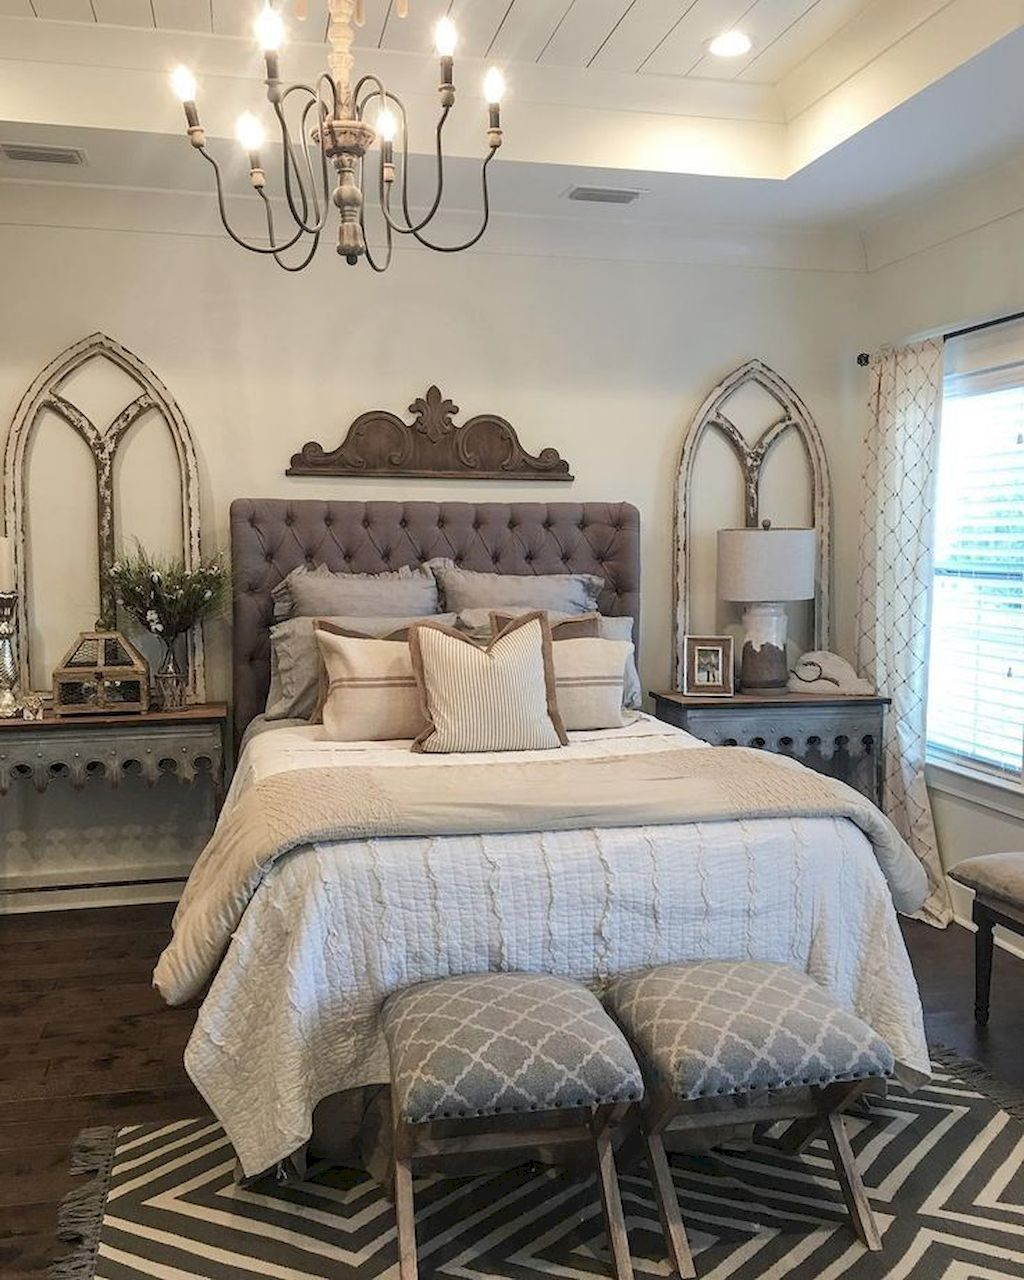 country farmhouse bedroom decorating ideas Farmhouse bedroom decor ideas are very warmly. Country bedrooms are all about personal comfort